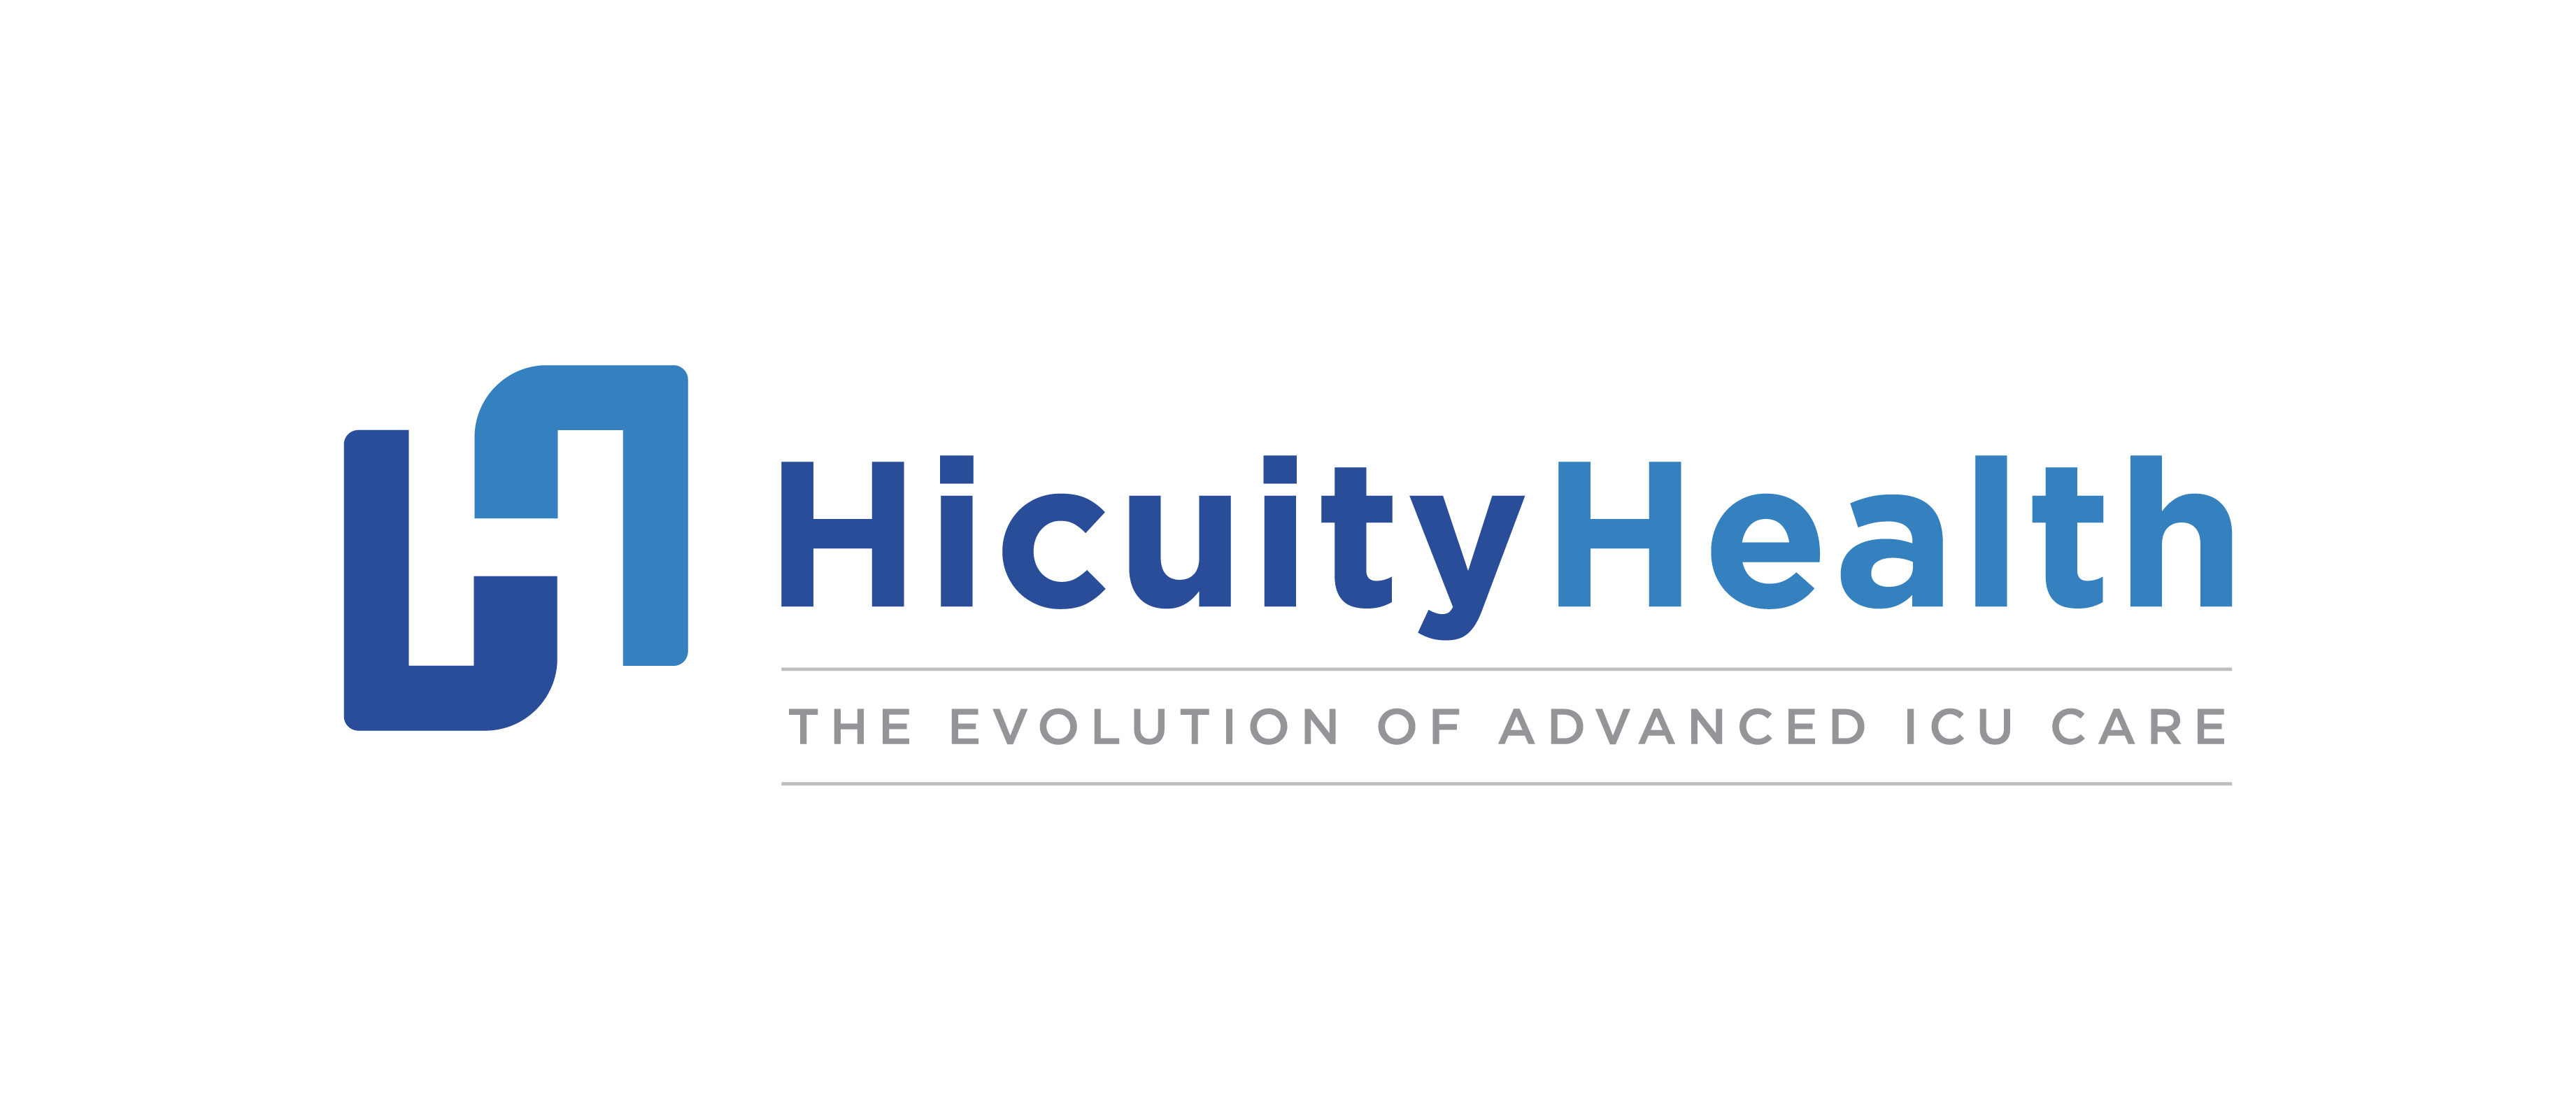 Hicuity Health The Evolution of Advanced ICU Care